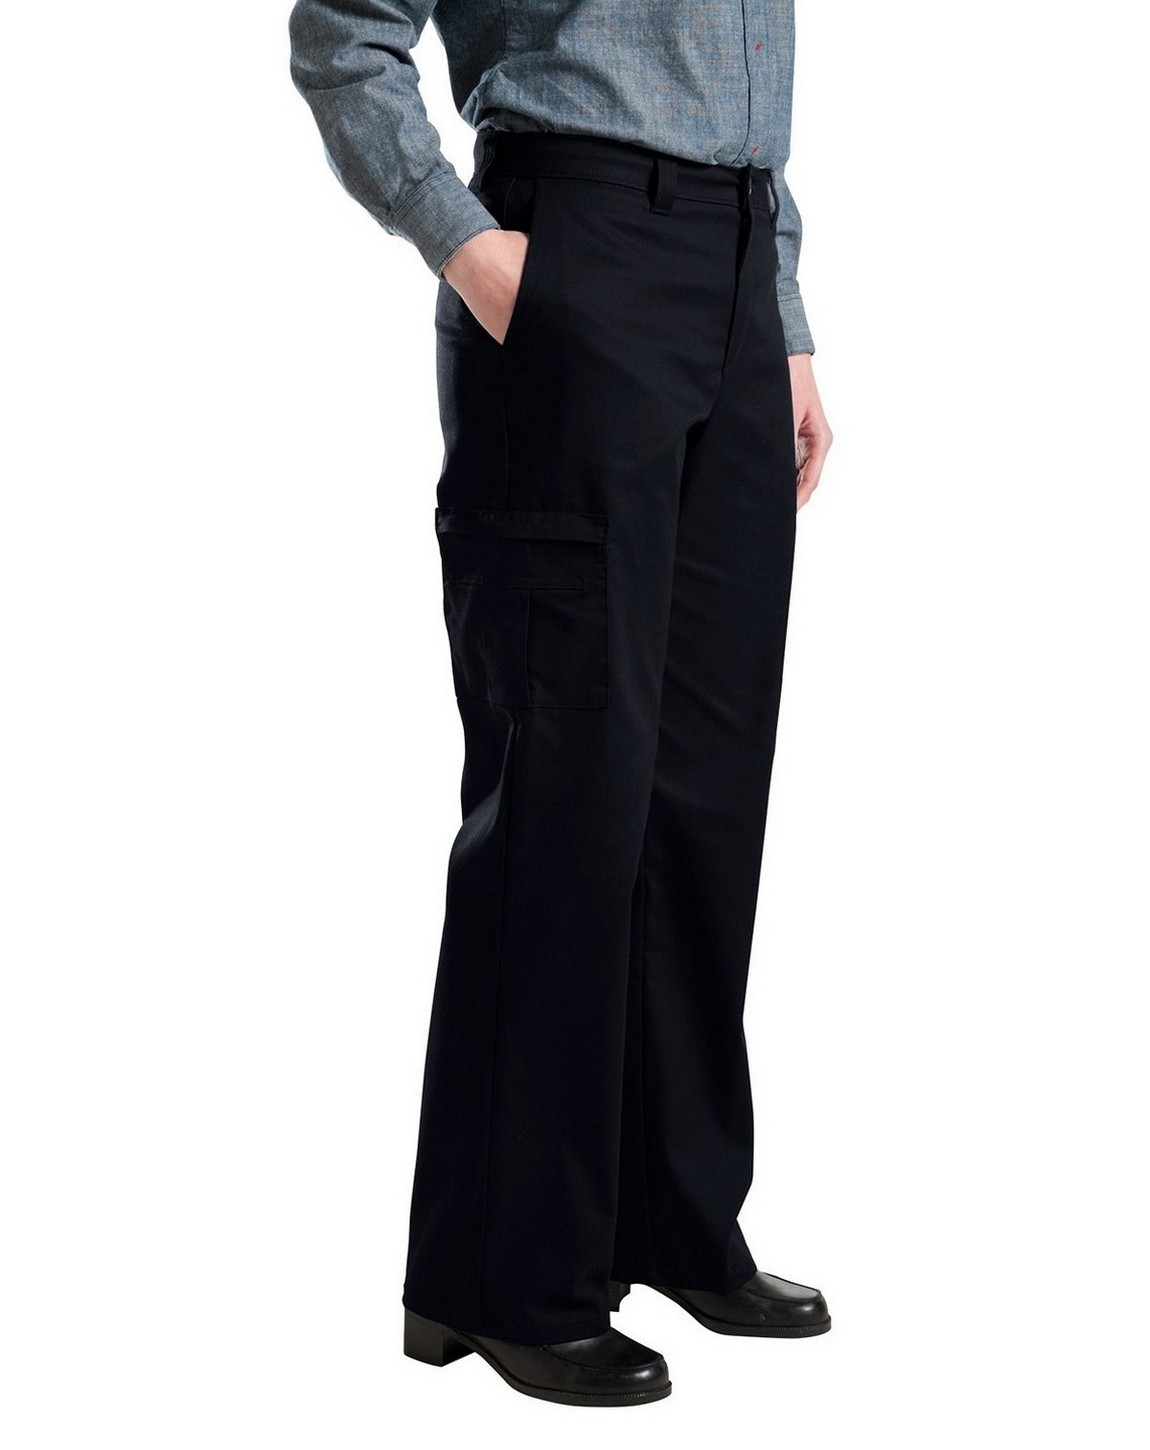 women s black pants with pockets photo - 2